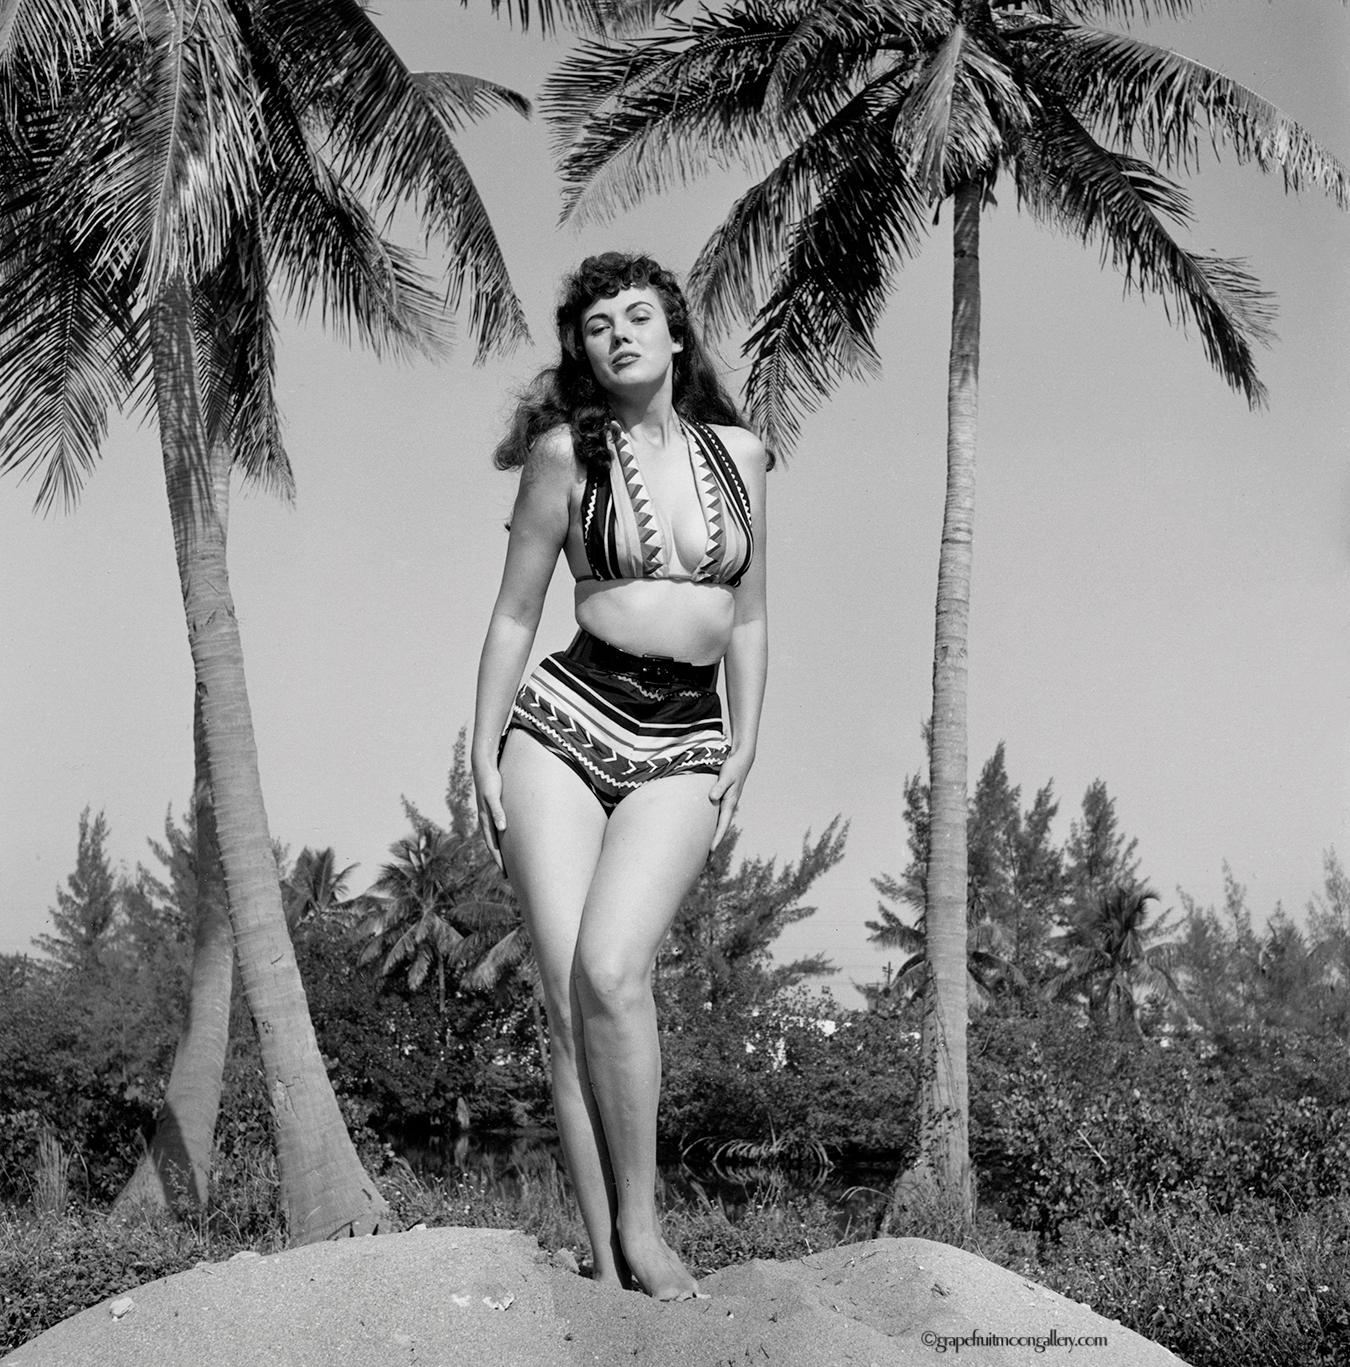 Bunny Yeager Self-Portrait in Seminole Indians Patterned Bikini